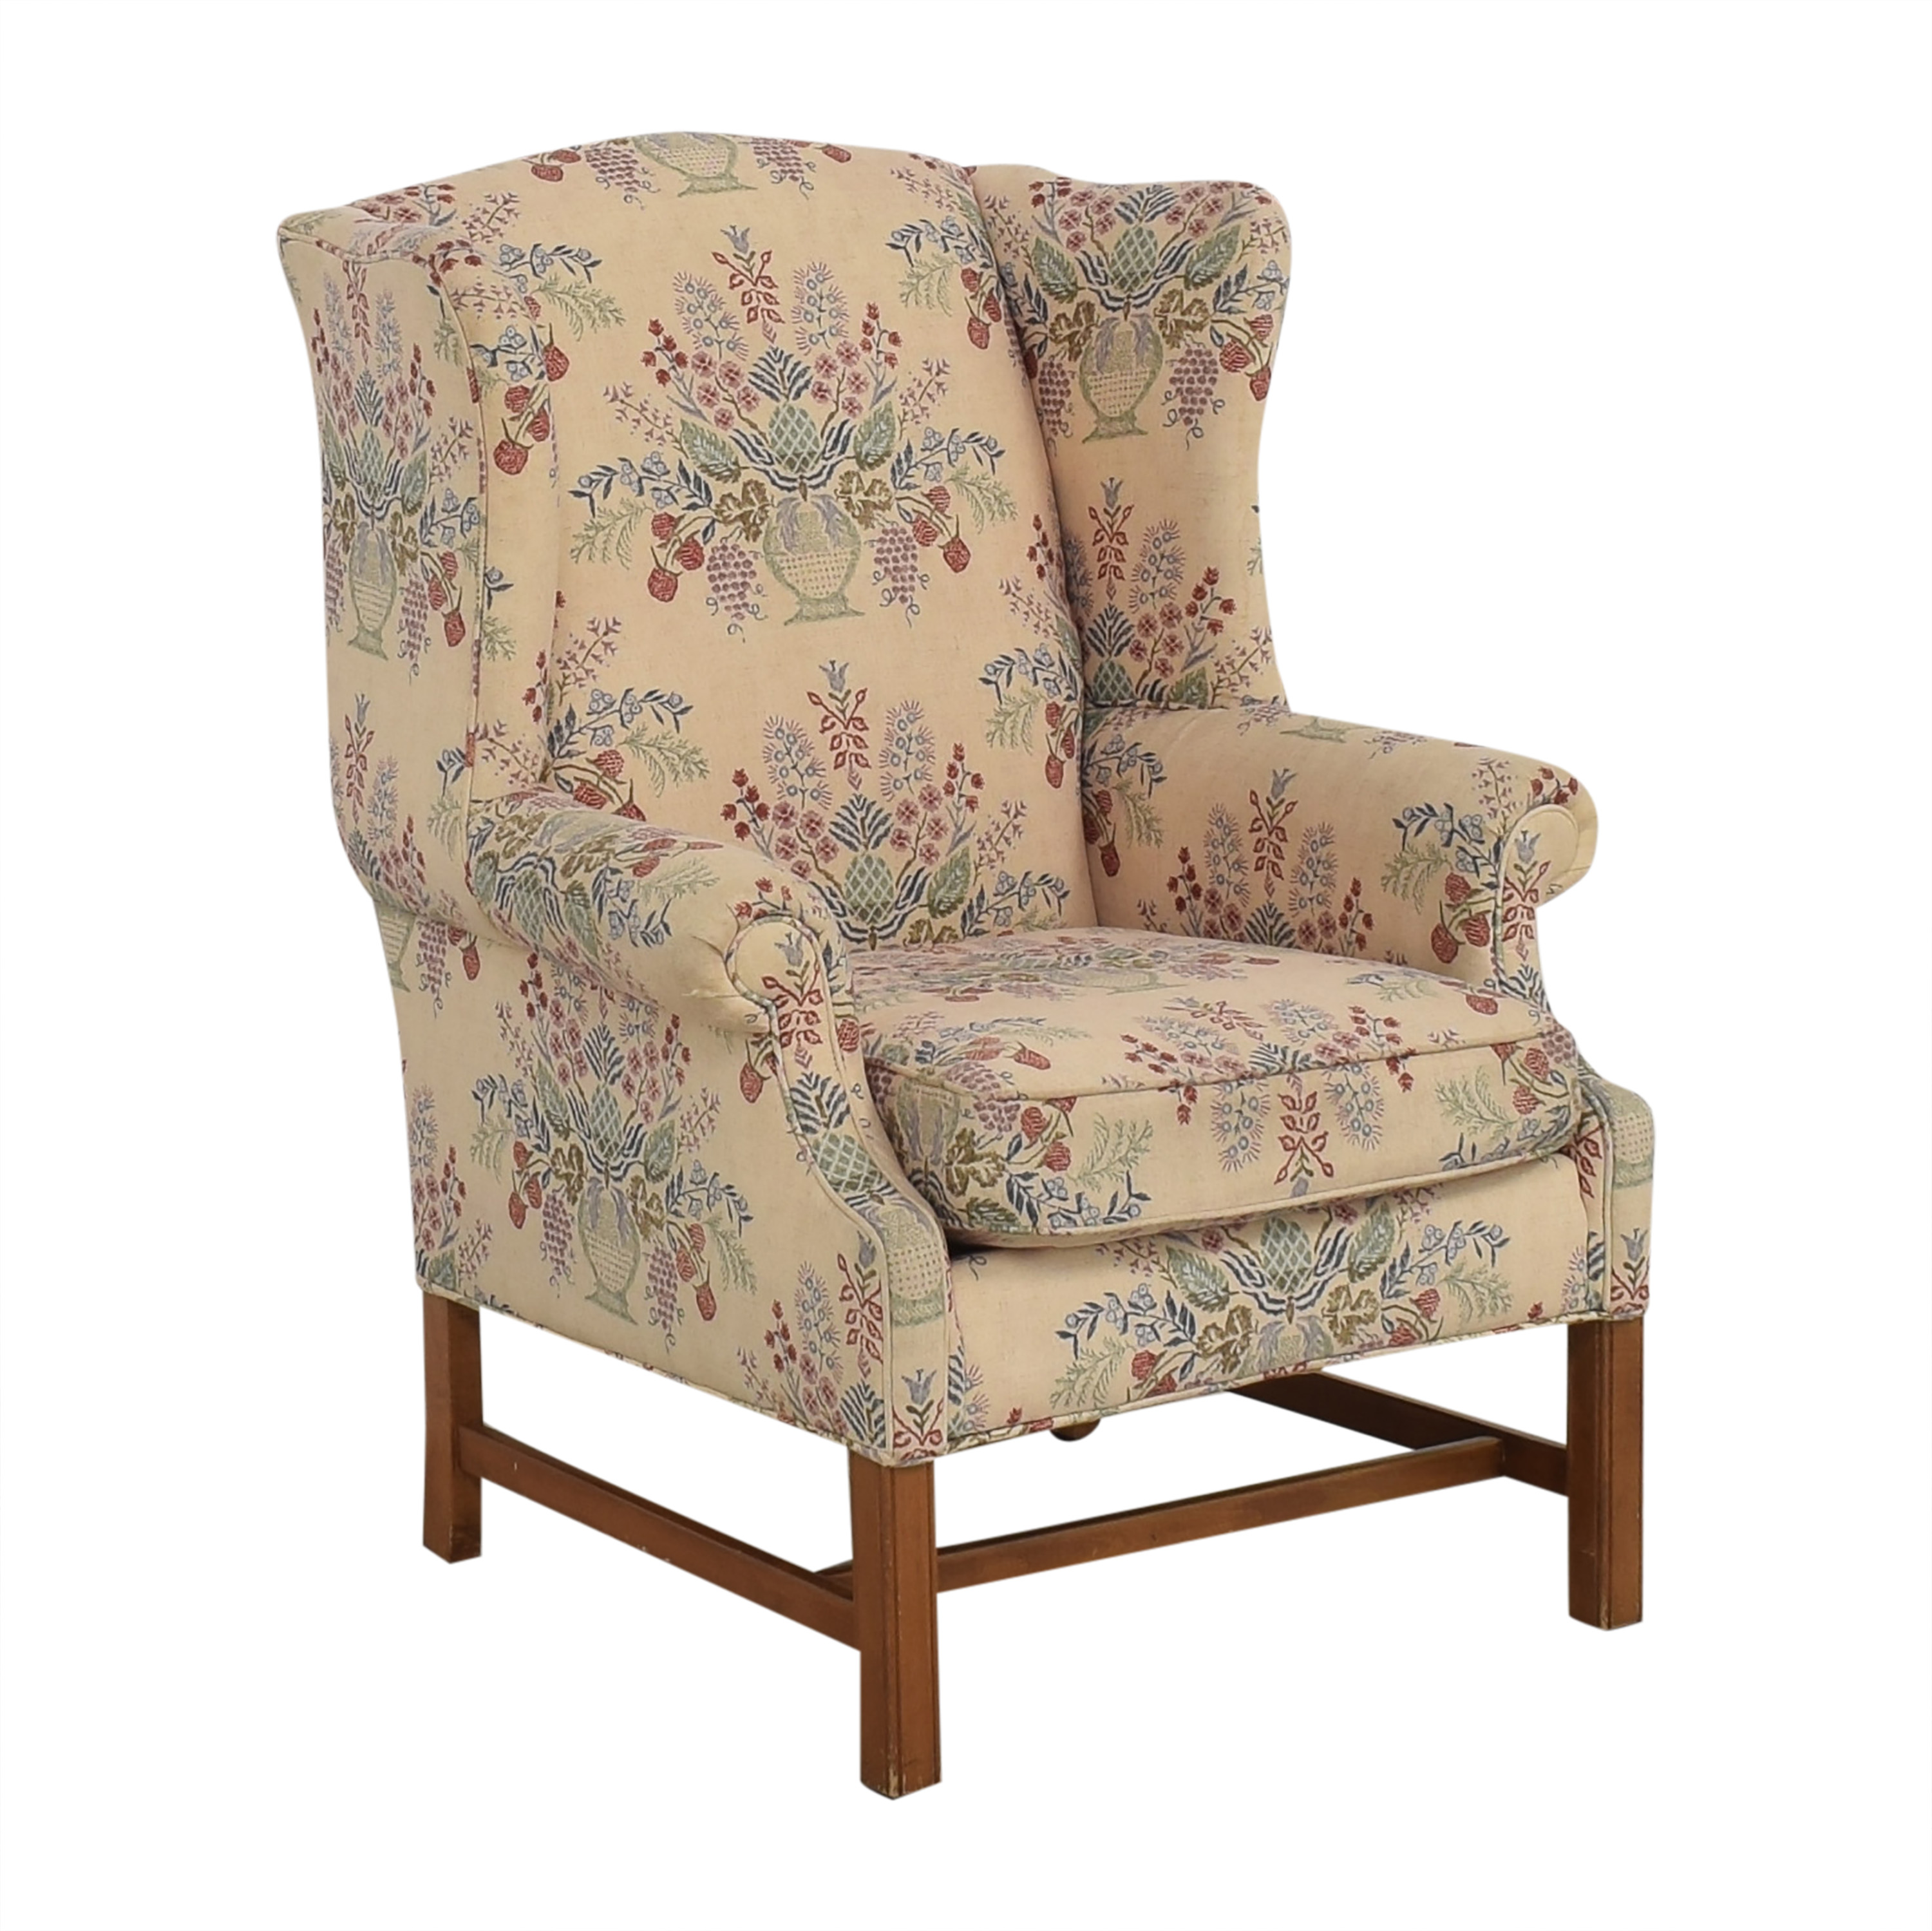 Ethan Allen Ethan Allen Wing Chair ct